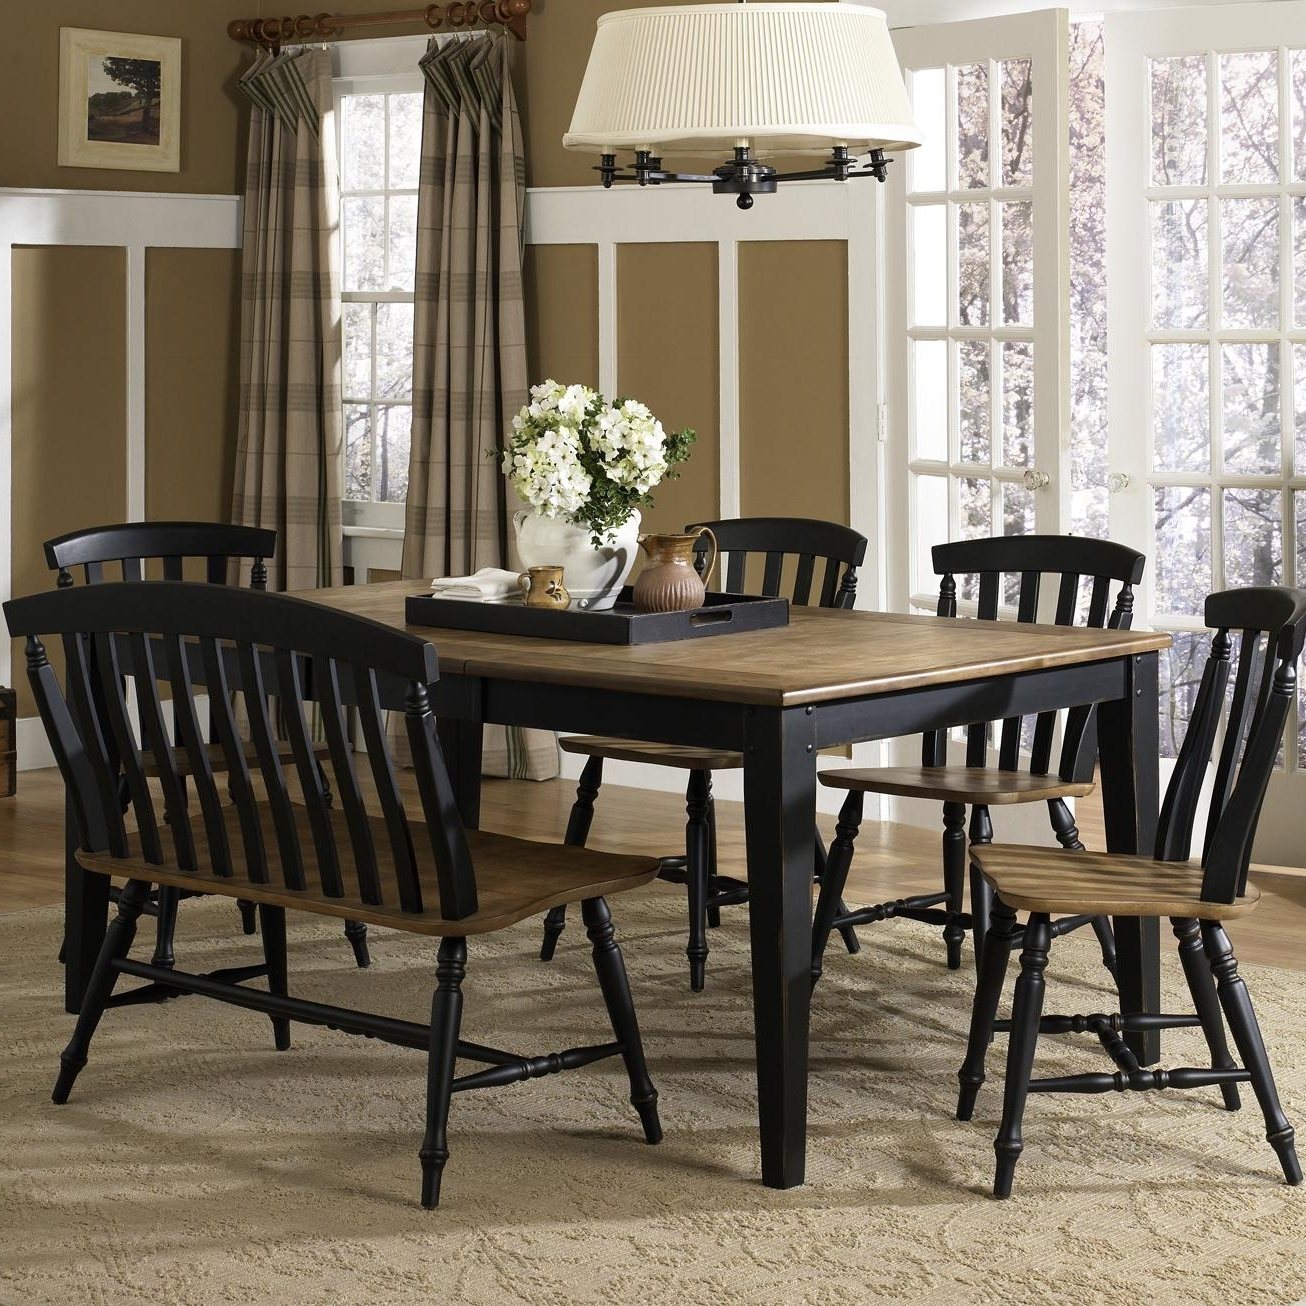 6 Seat Dining Table Sets Inside 2017 Liberty Furniture Al Fresco Ii Six Piece Dining Table Set With (Gallery 16 of 25)